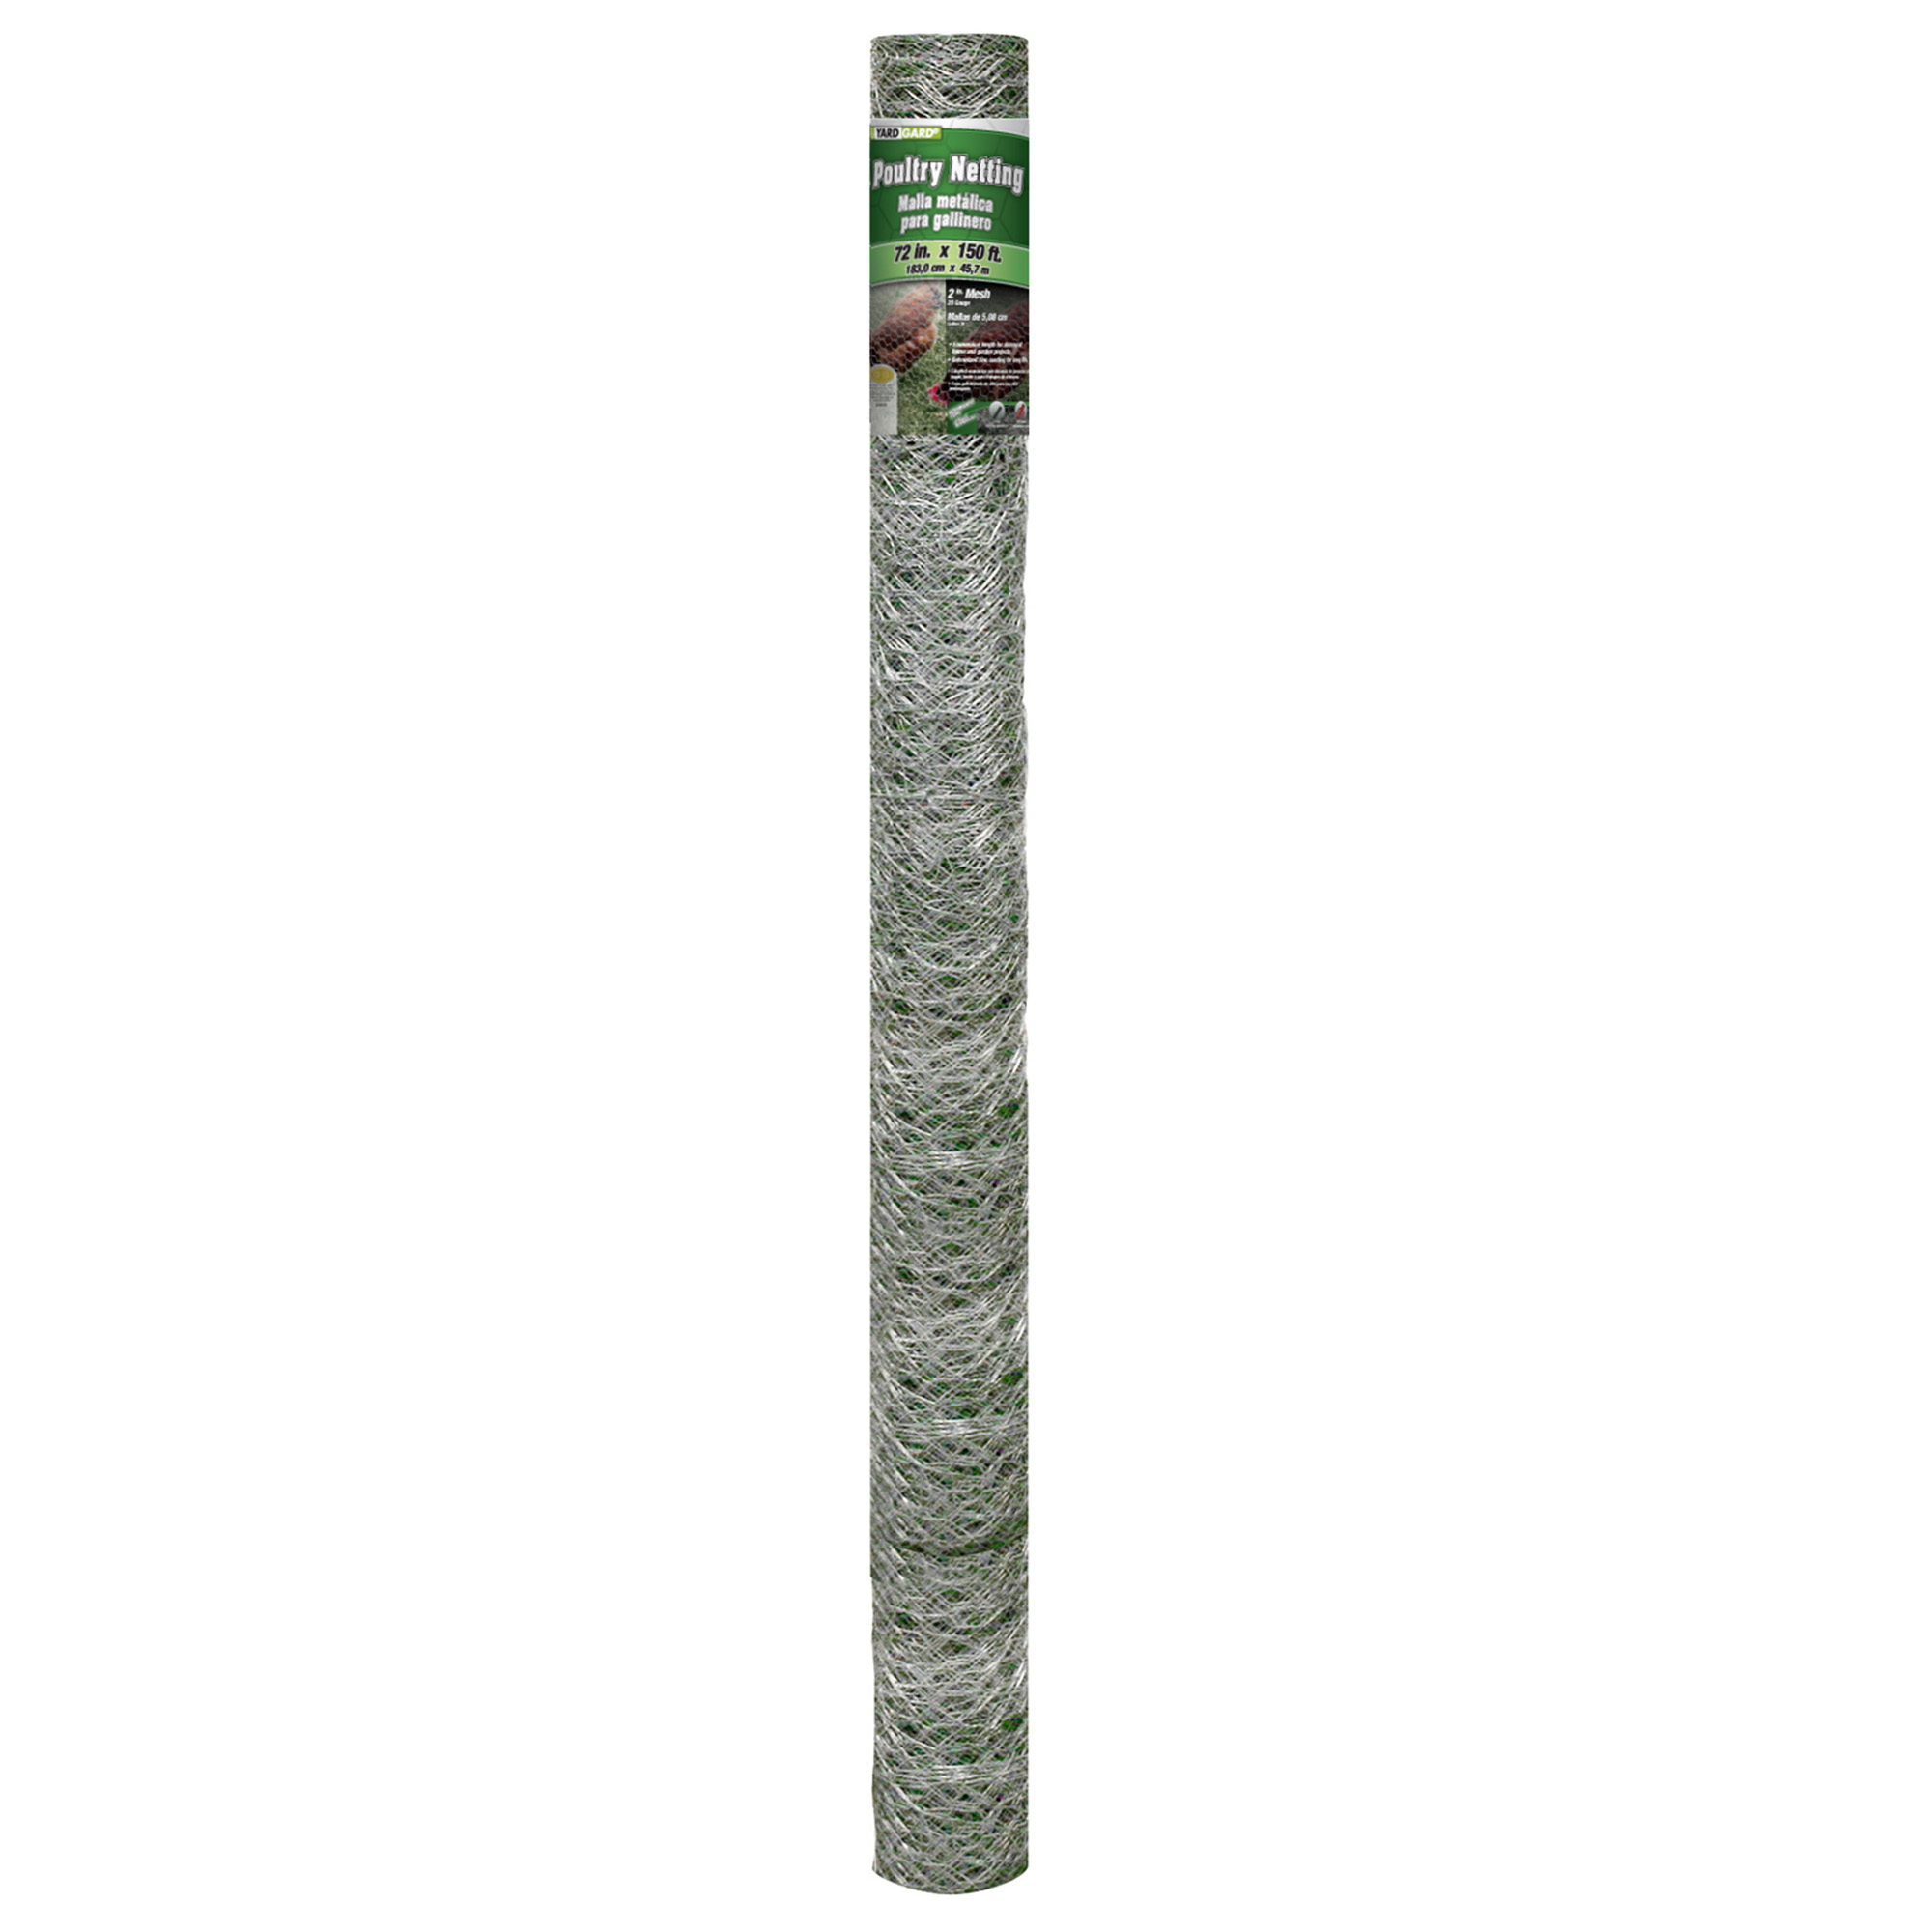 YARDGARD 72 inch by 150 foot 20 Gauge 2 inch Mesh Poultry Netting